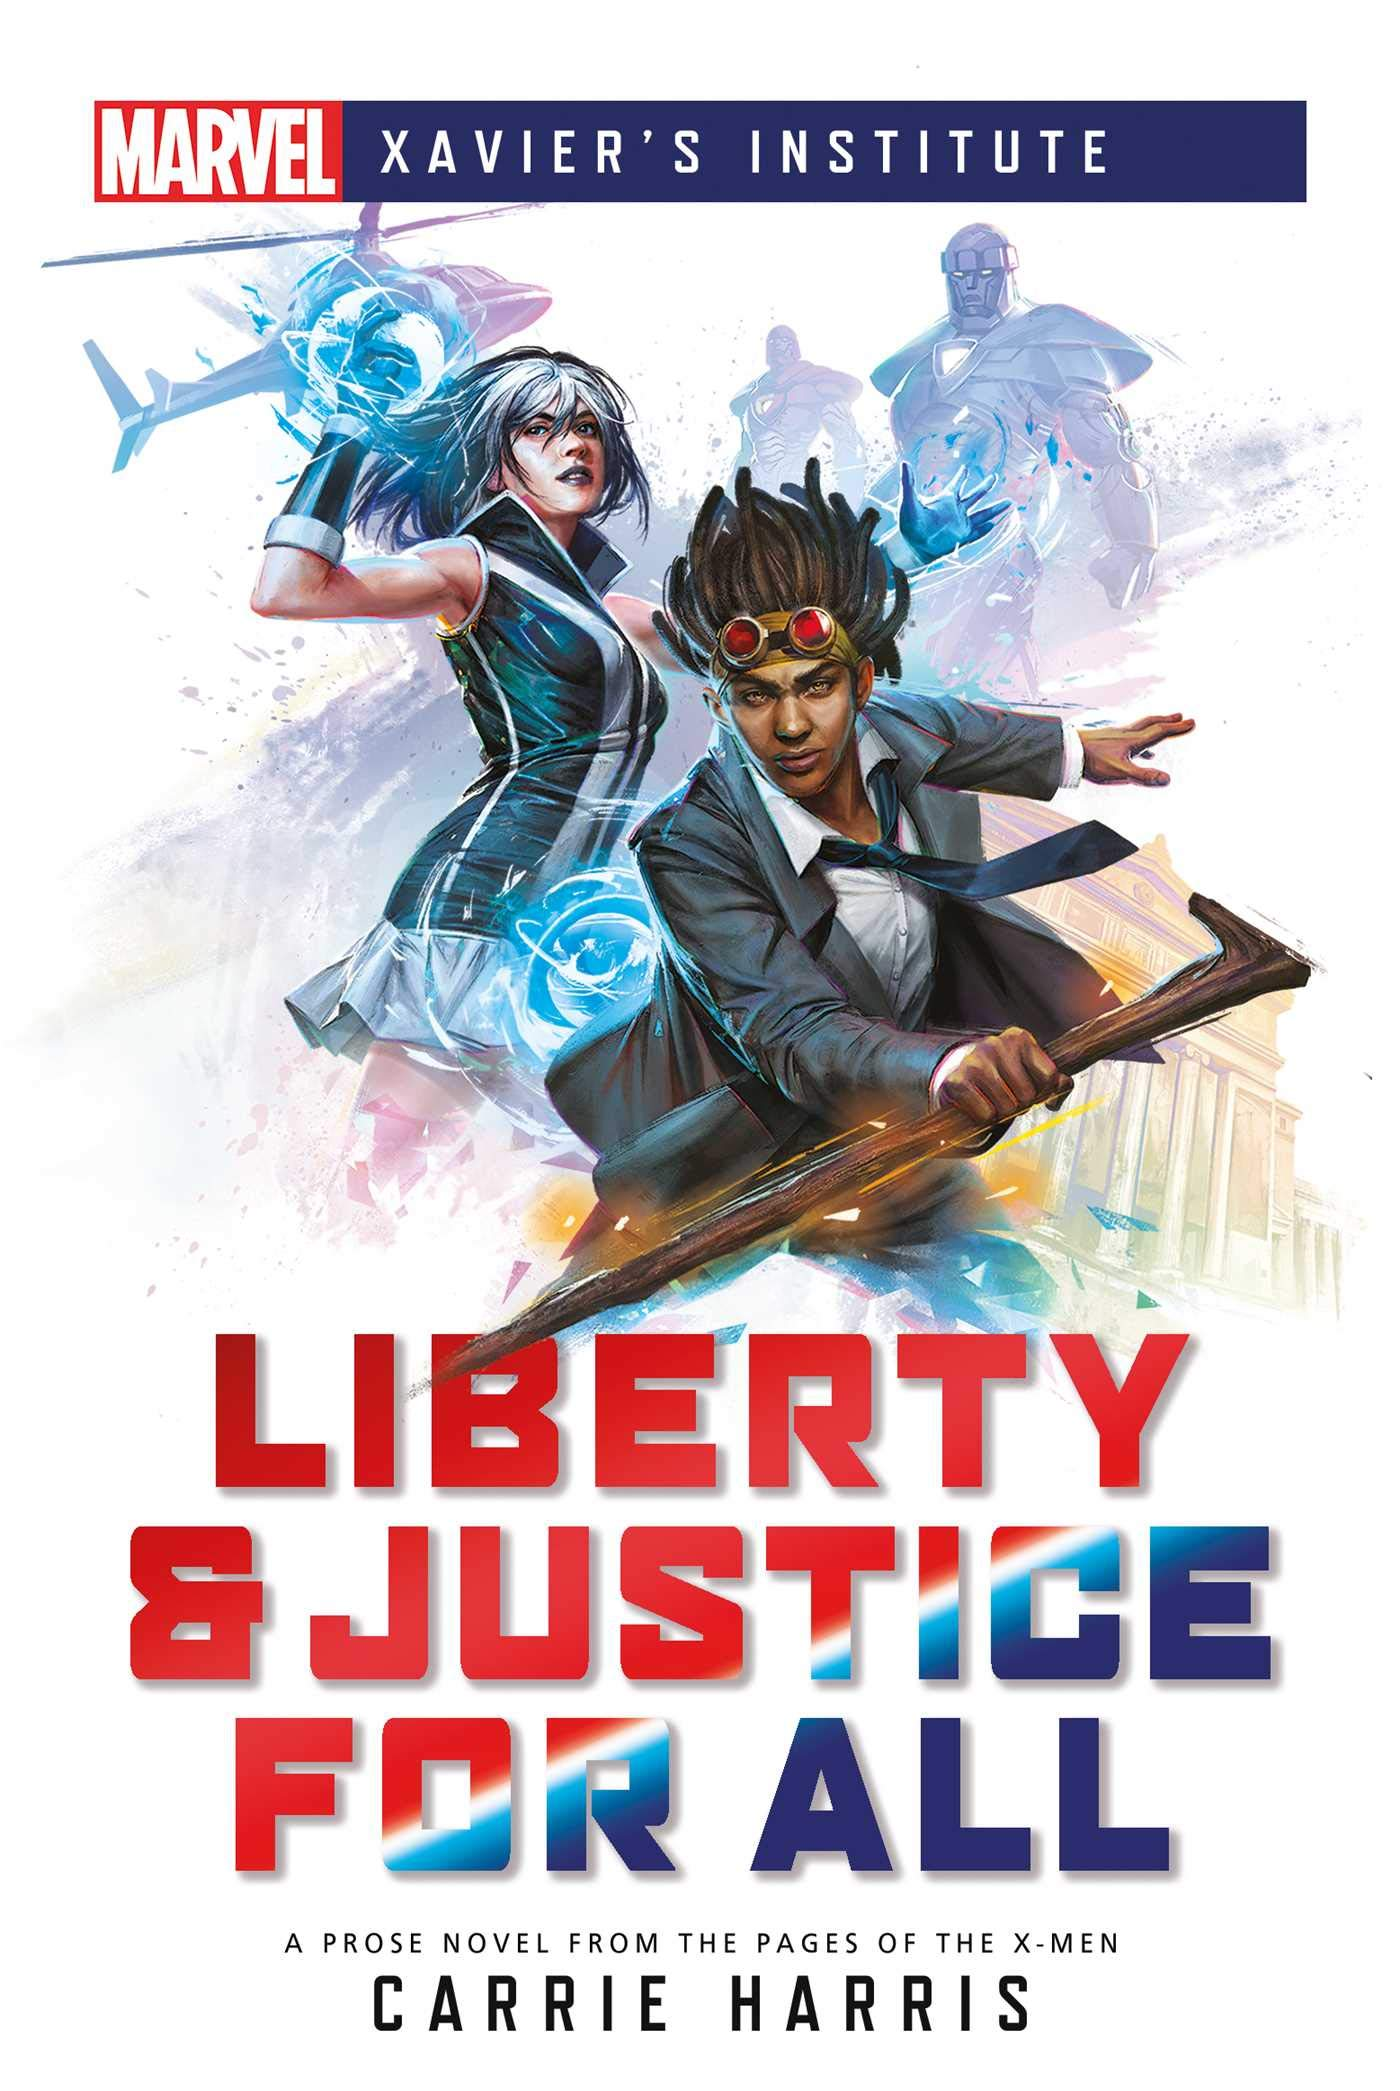 Marvel Xaviers Institute: Liberty & Justice for All